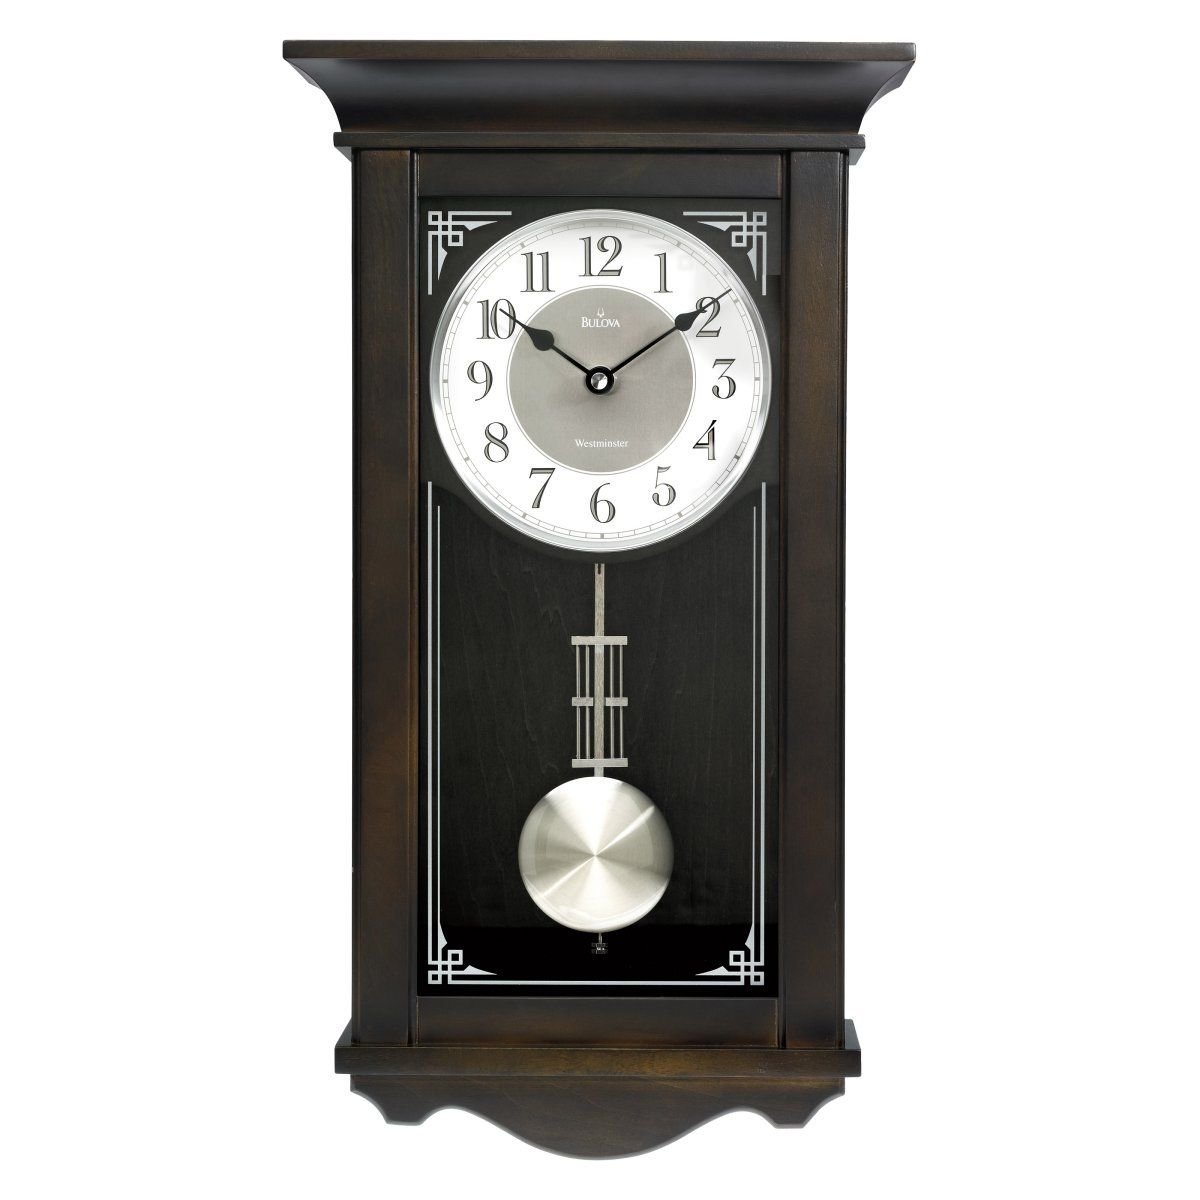 Bulova Elsmere Wall Chime Clock 11in Wide 12999 To buy